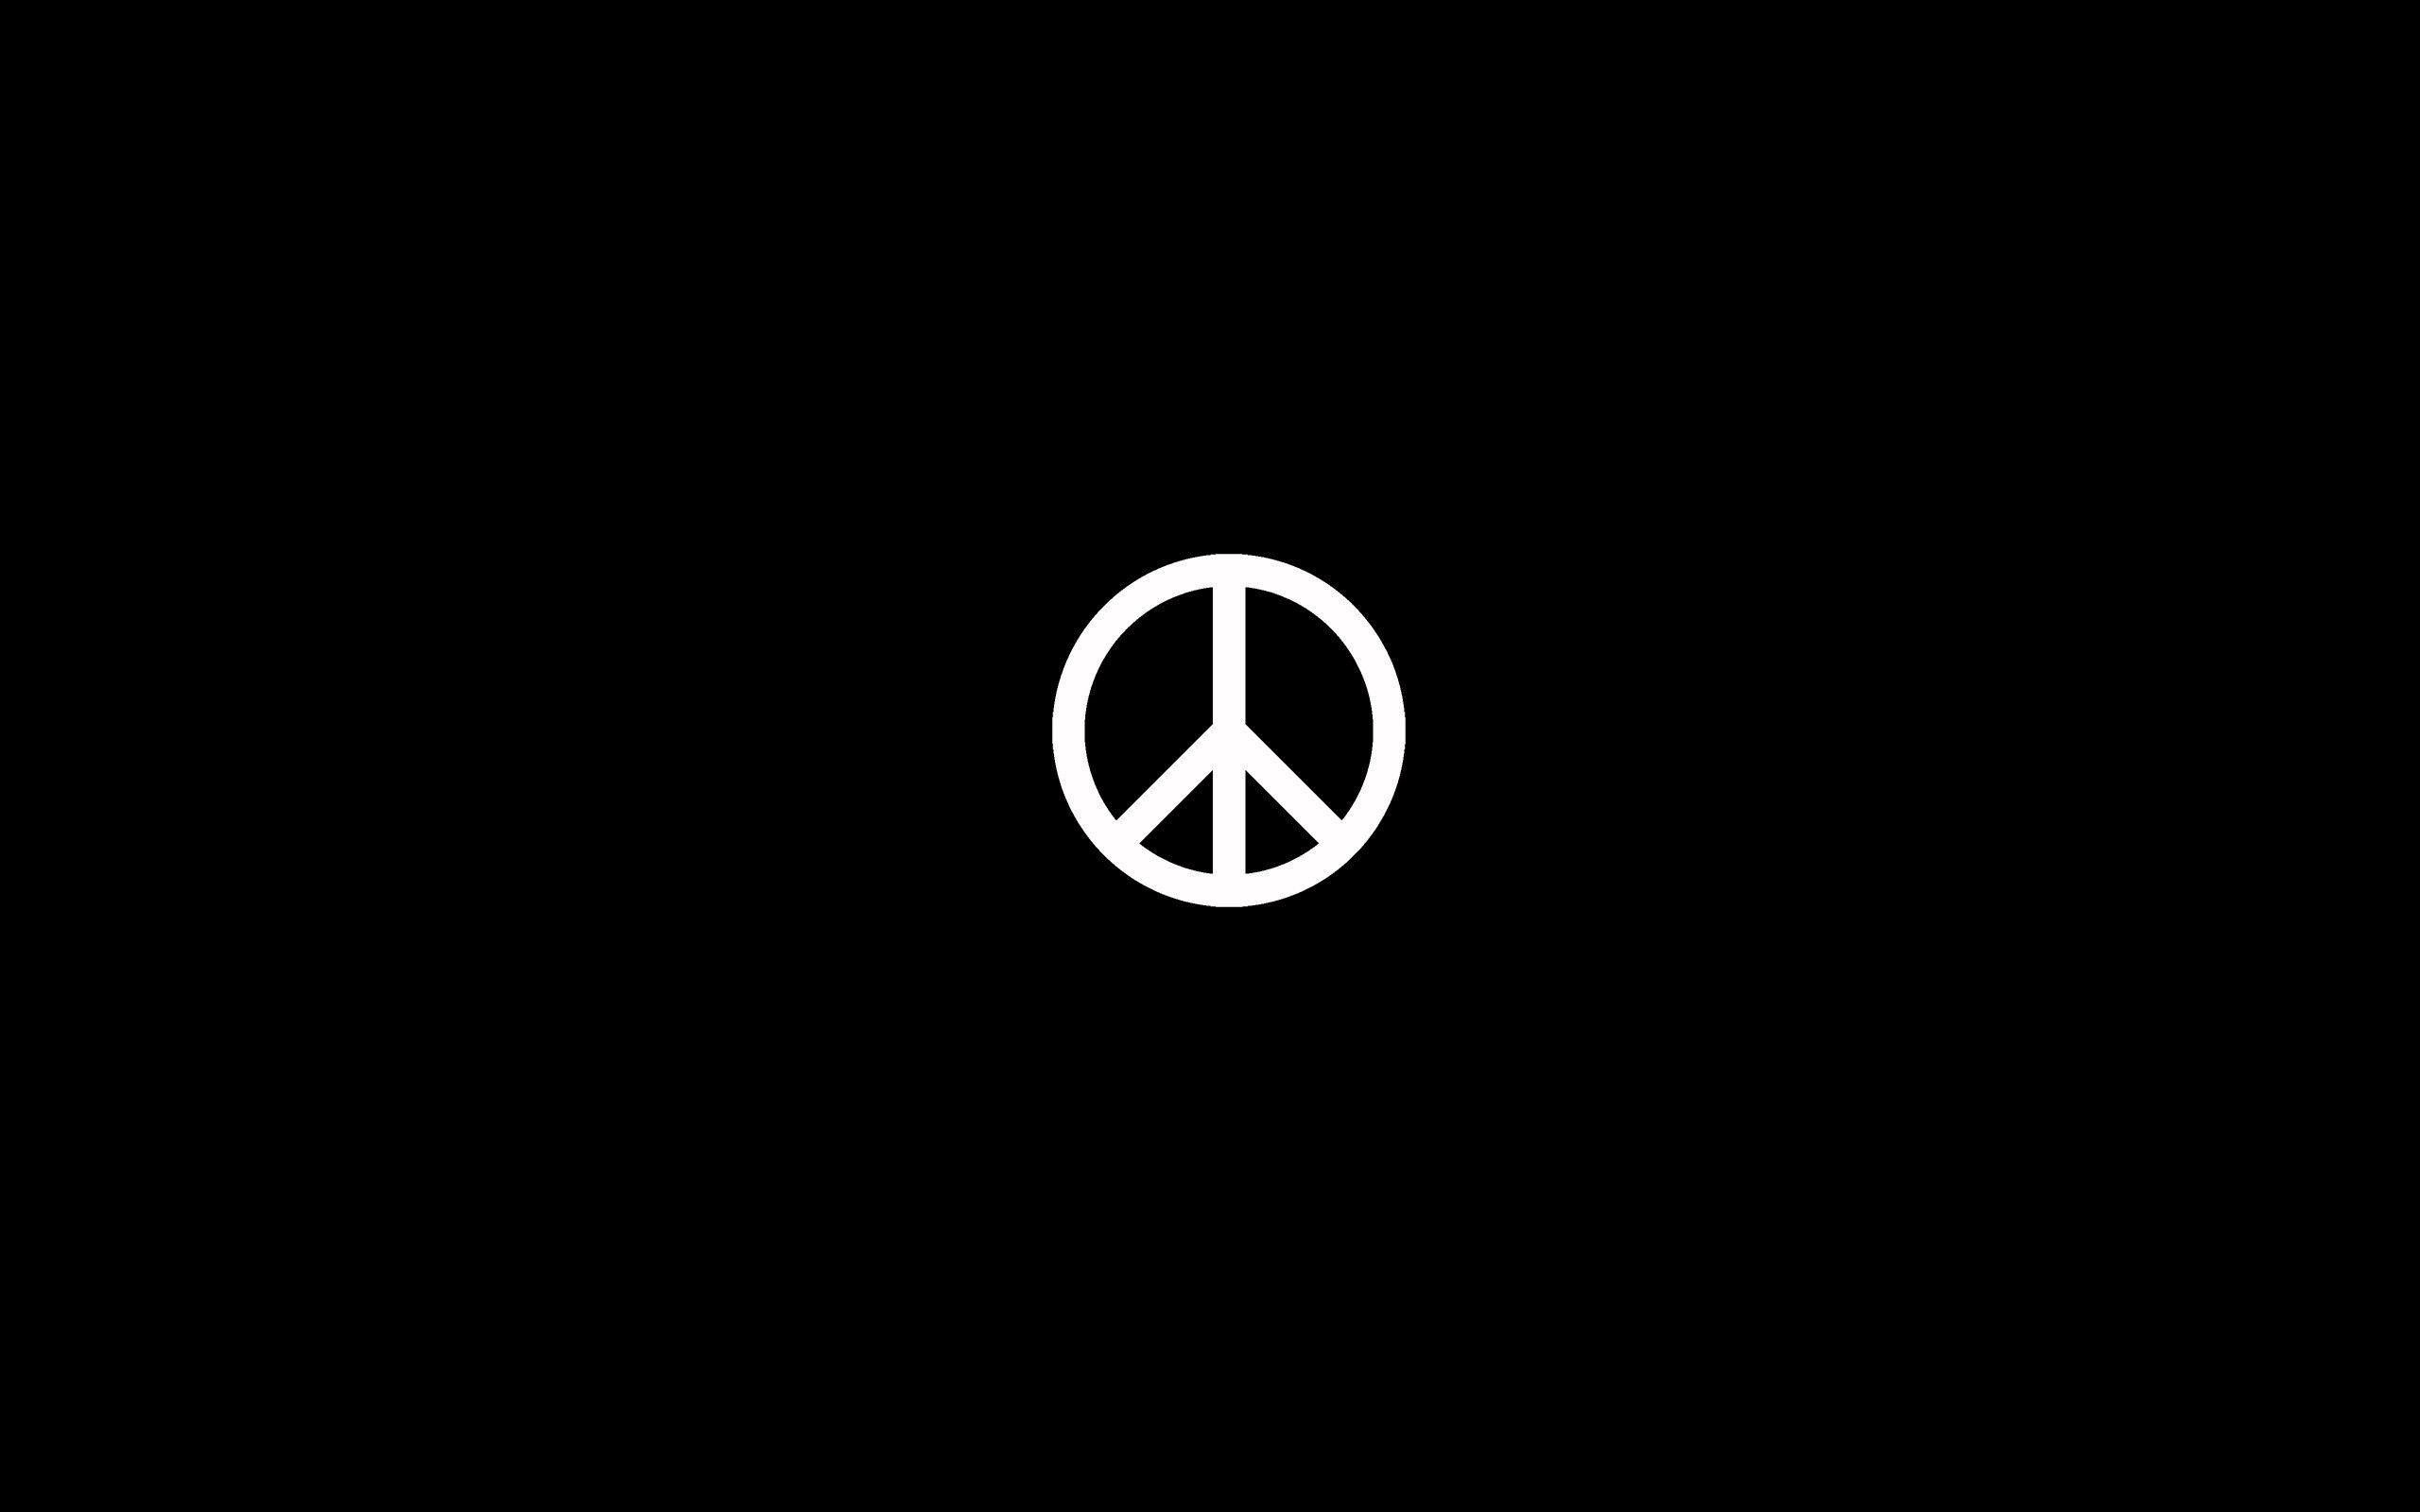 Fresh Peace Hd Wallpapers Free Download Wallpaper Free Download Peace Smile Images